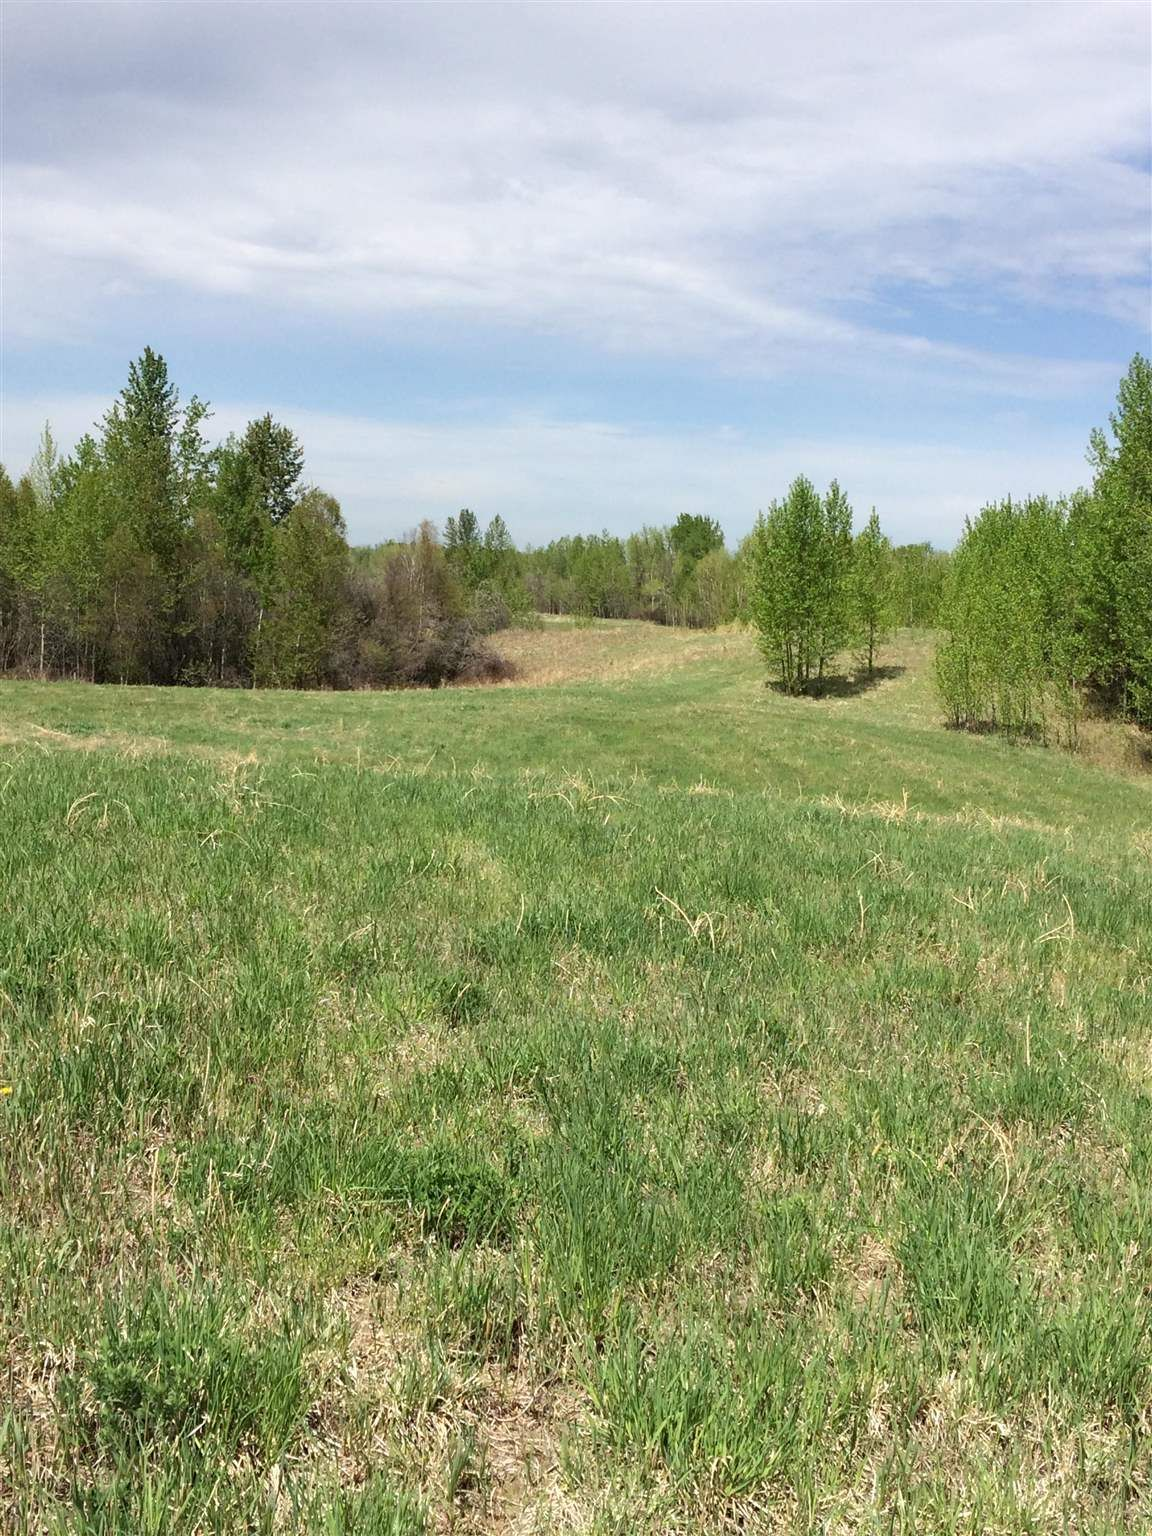 Main Photo: Twp 510 RR 33: Rural Leduc County Rural Land/Vacant Lot for sale : MLS®# E4239253